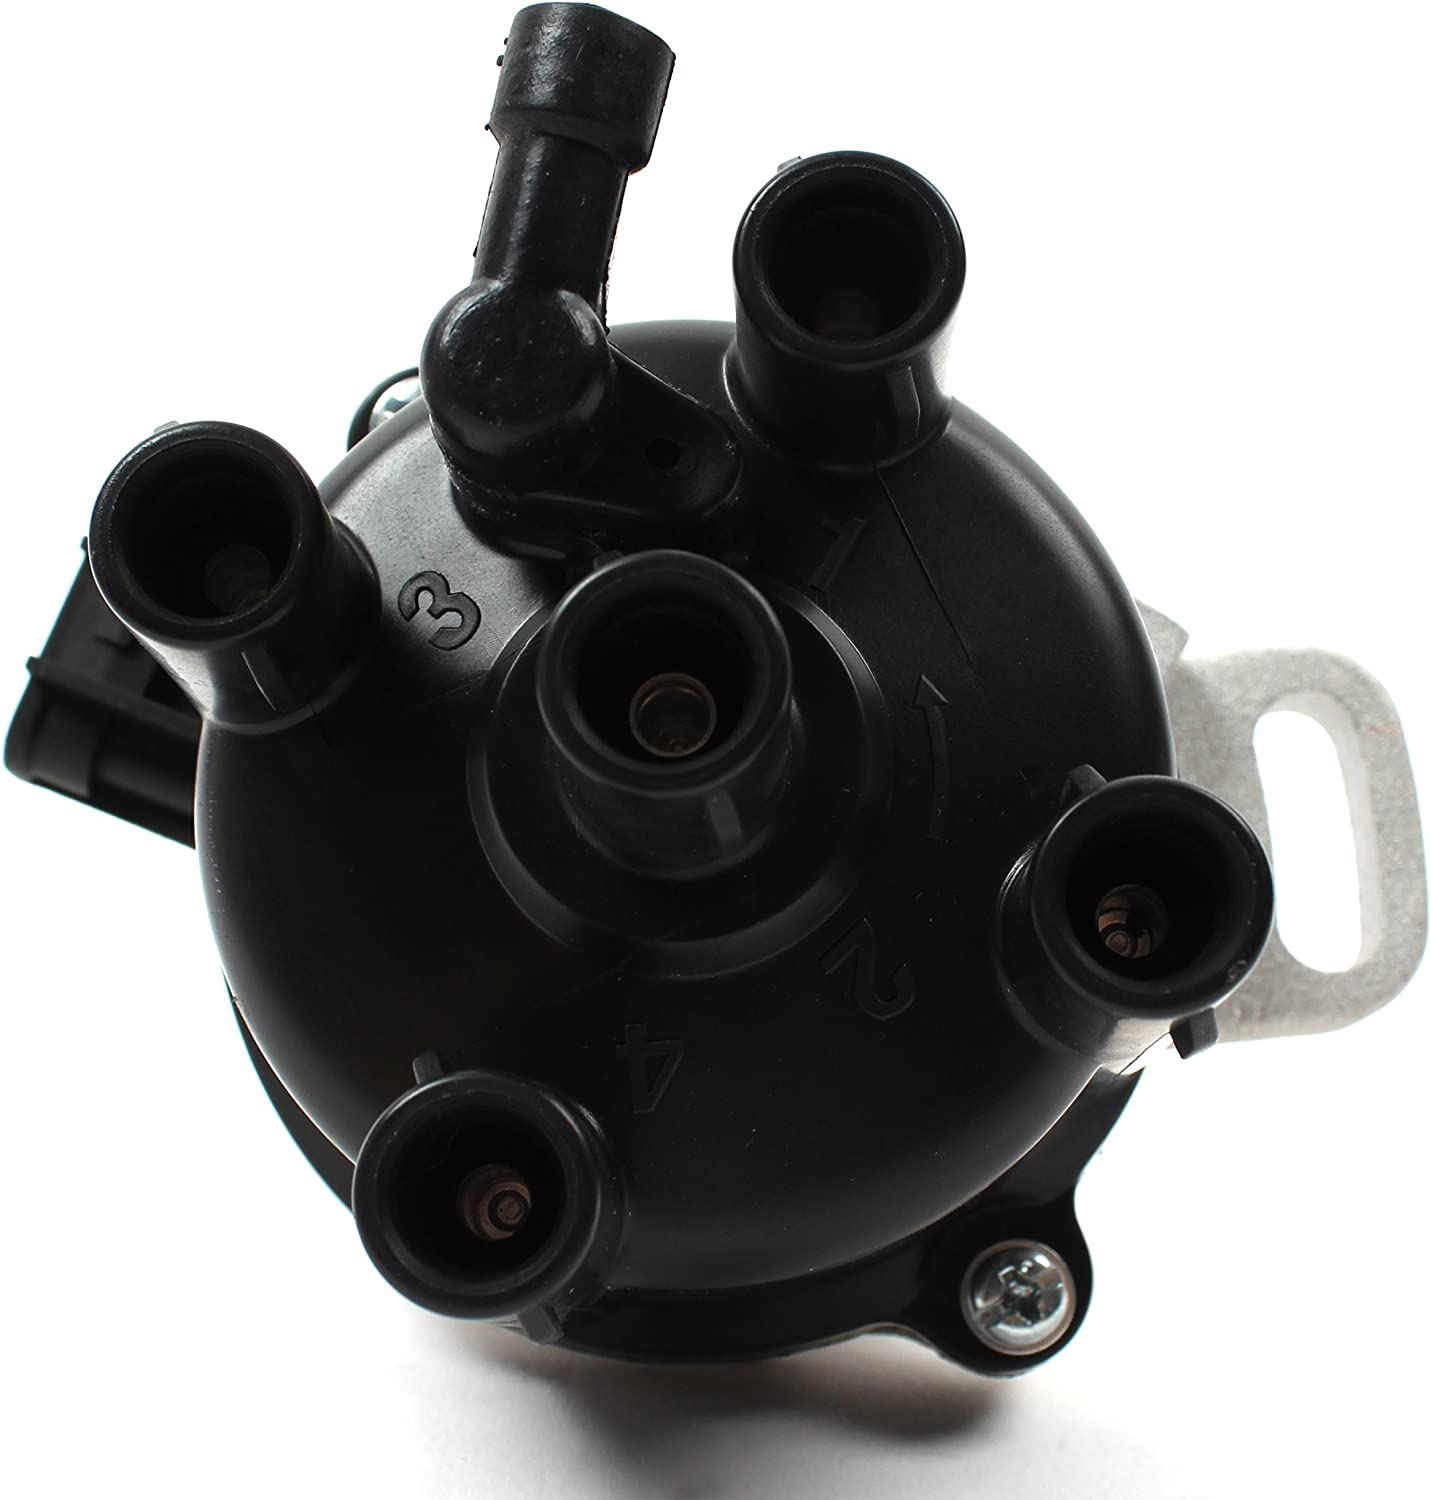 EDCA-300 Brand New Complete Ignition Distributor with Cap /& Rotor Compatible with 94-95 Toyota Camry Celica 2.2L 5SFE California Emission